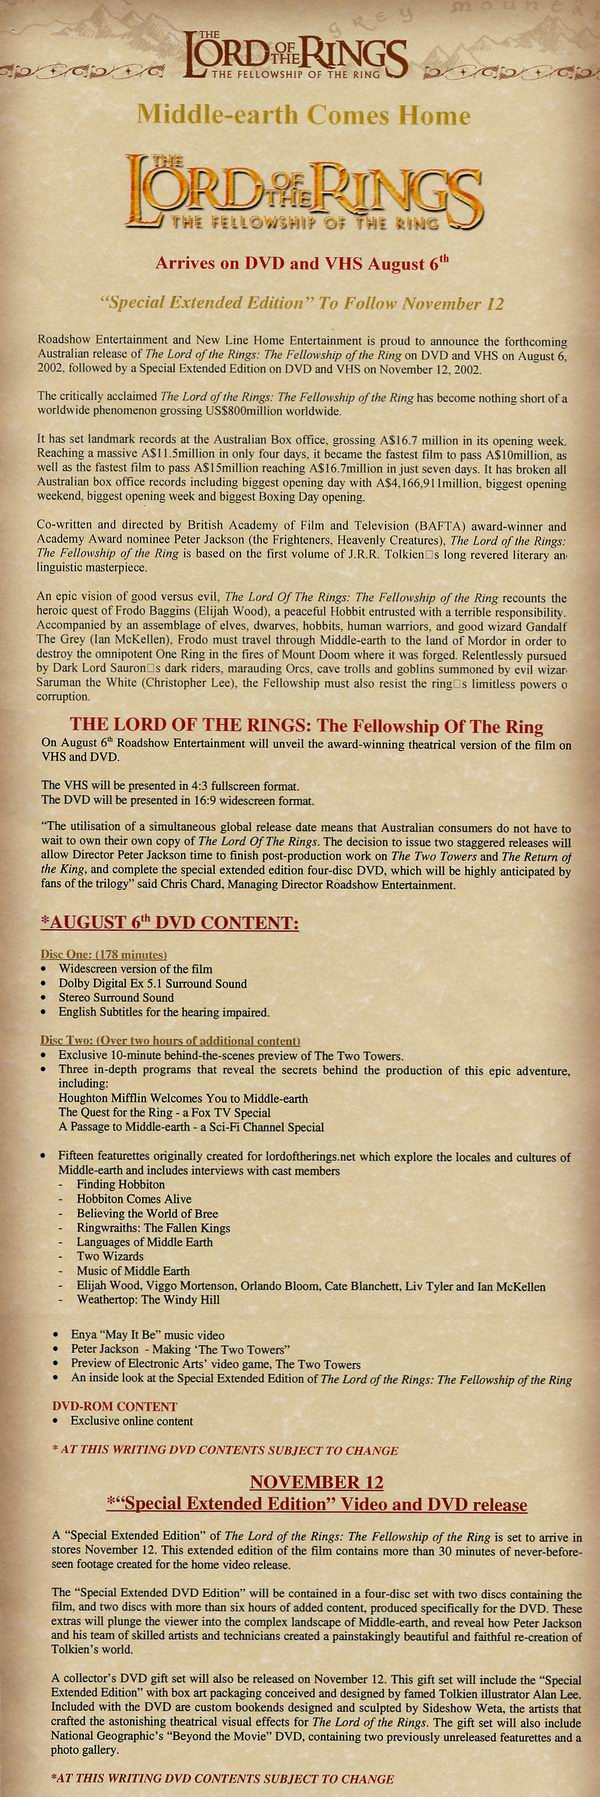 the corruption of power in the fellowship of the ring Article on how jrr tolkien used the idea of corruption in the lord of the rings for corruption, and plague the fellowship ring will grant that power.